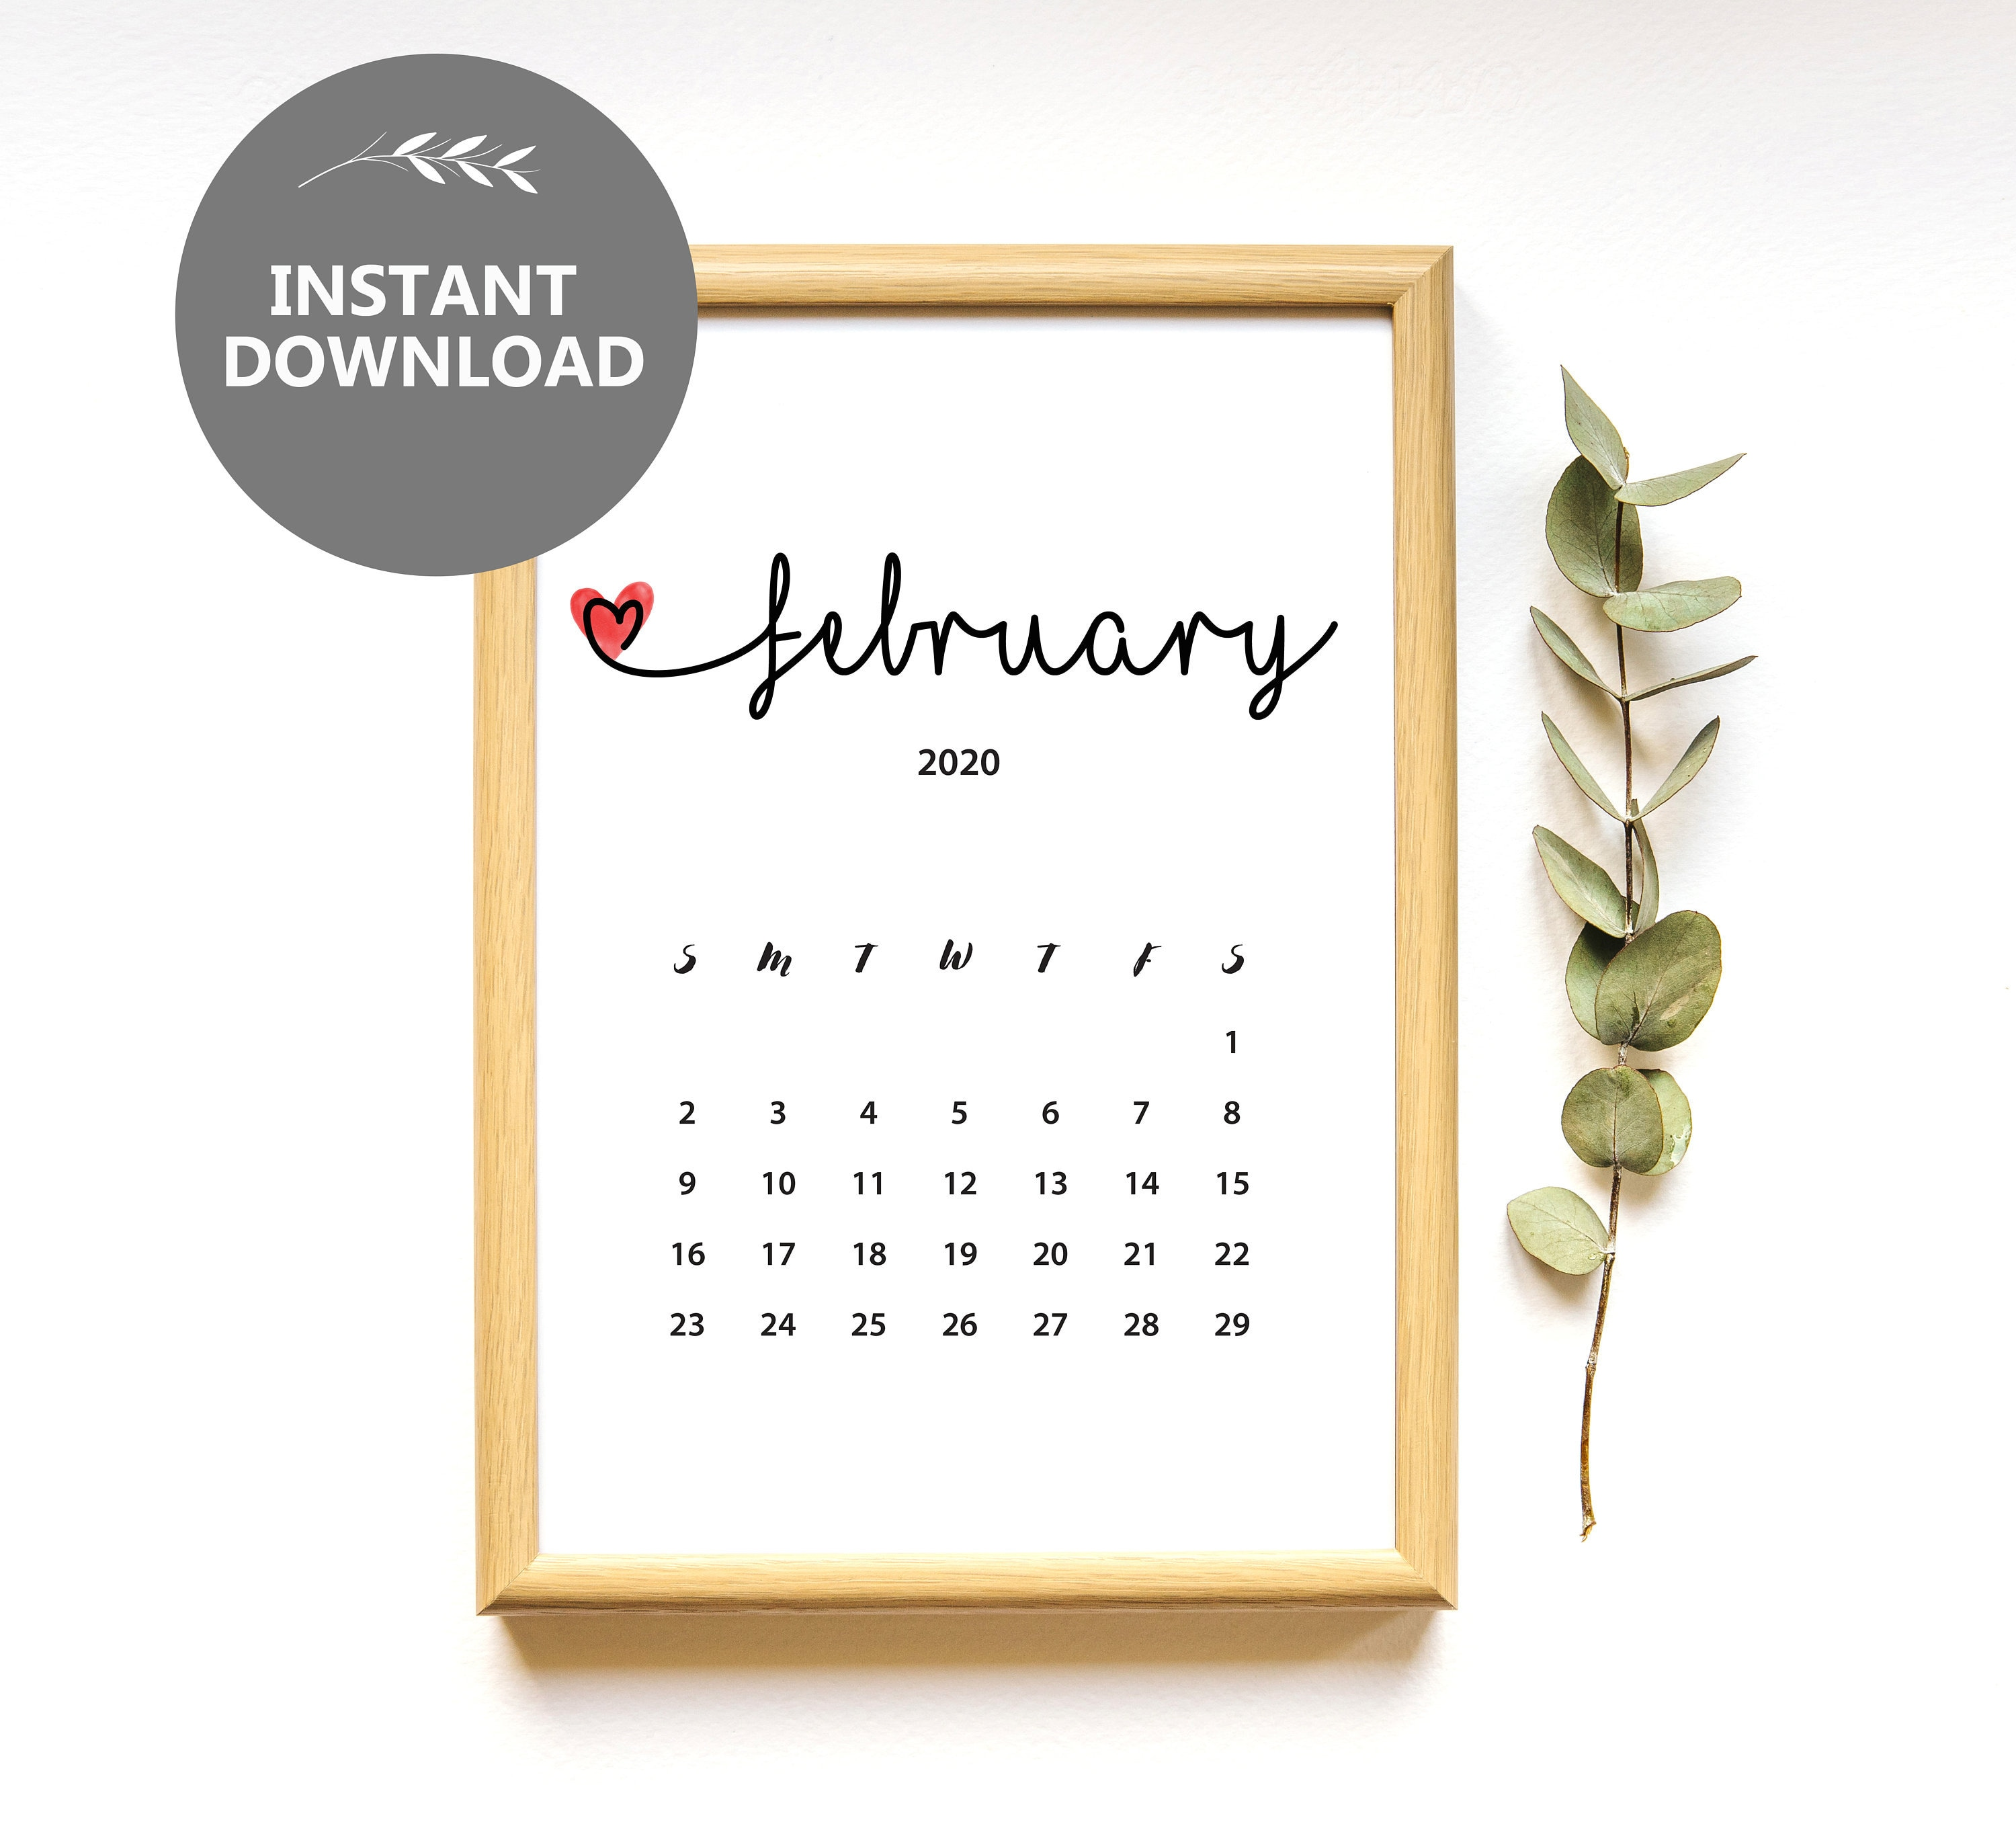 I Never Knew This Did You February 2020 Calendar Link February 2020 Calendar Instant Download Pregnancy | Etsy